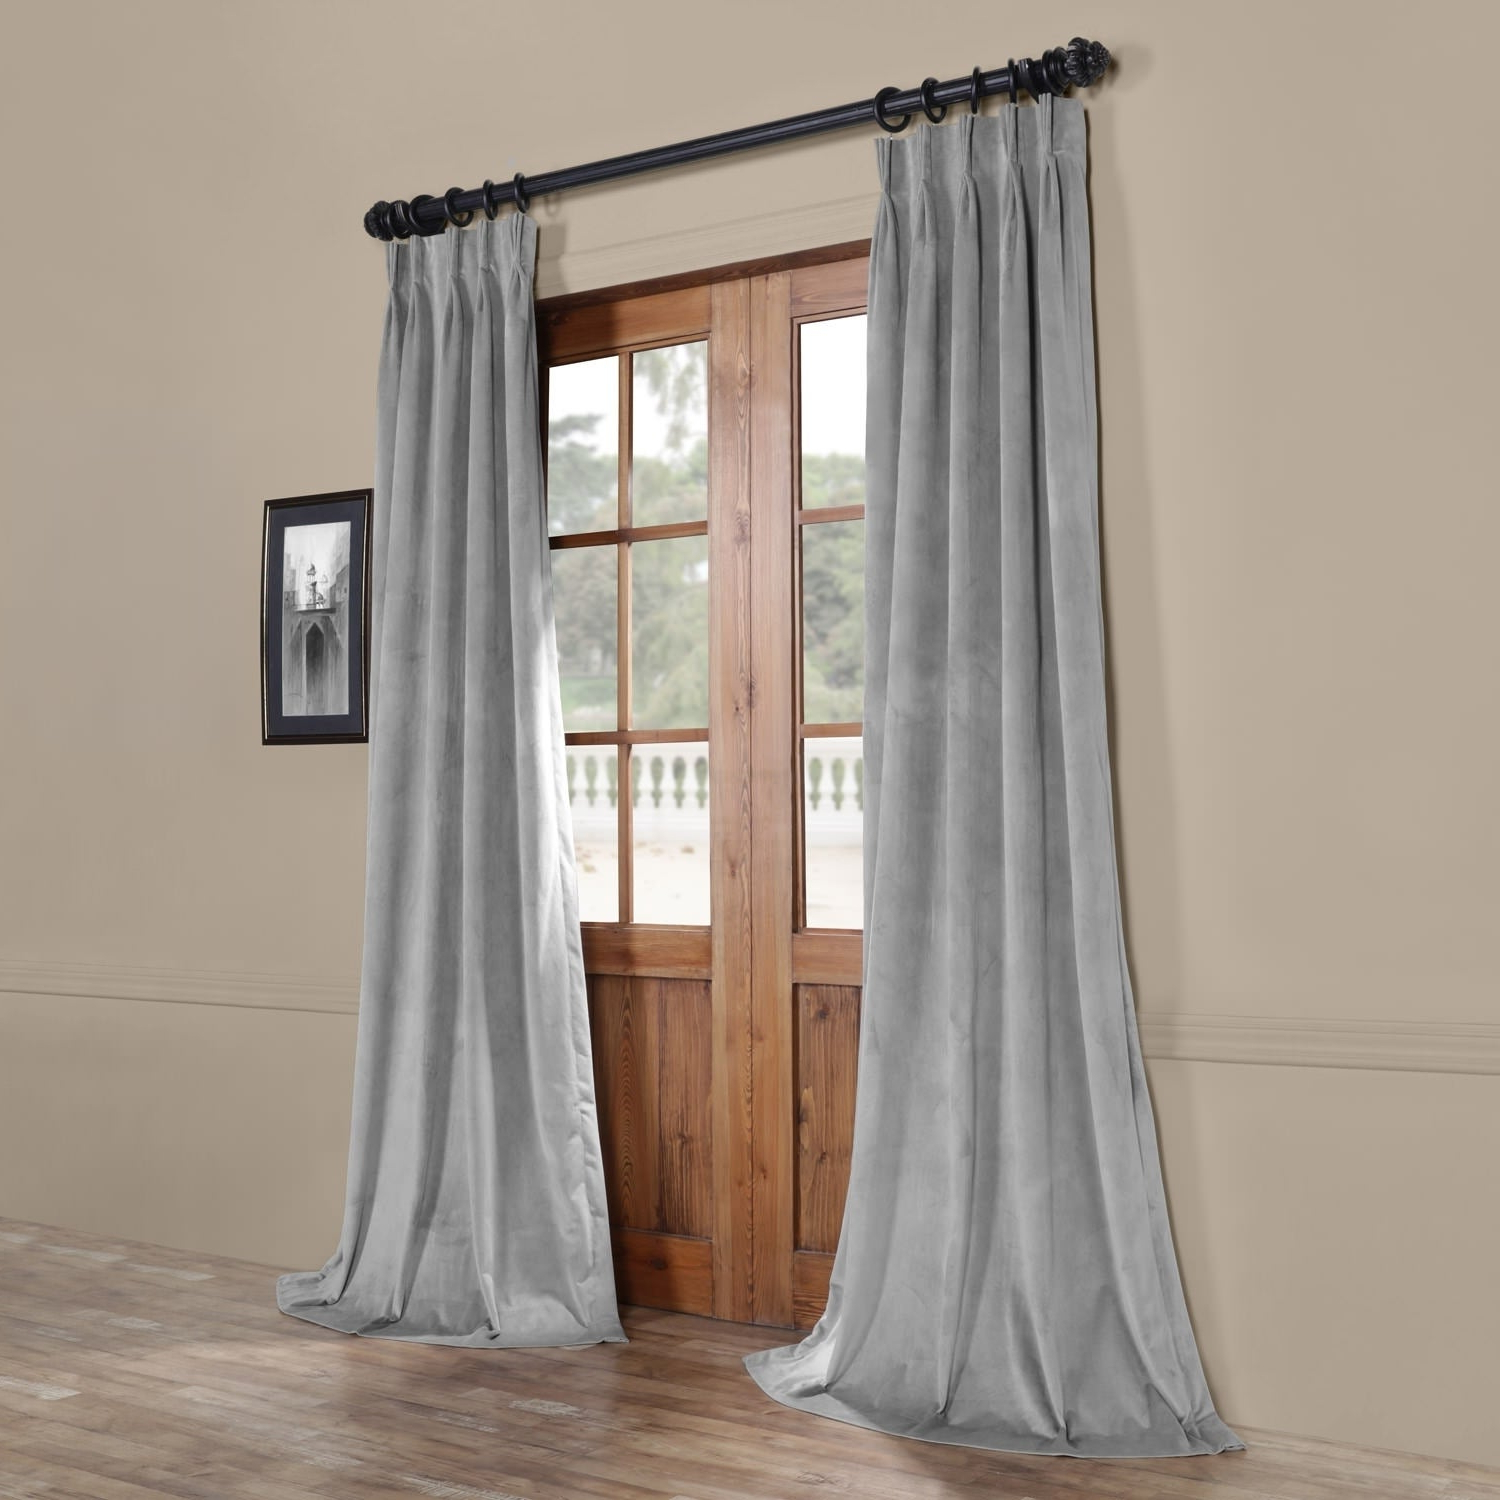 Newest Signature Pinch Pleated Blackout Solid Velvet Curtain Panels Regarding Exclusive Fabrics Signature Pinch Pleated Blackout Solid Velvet Curtain Panel (View 5 of 20)